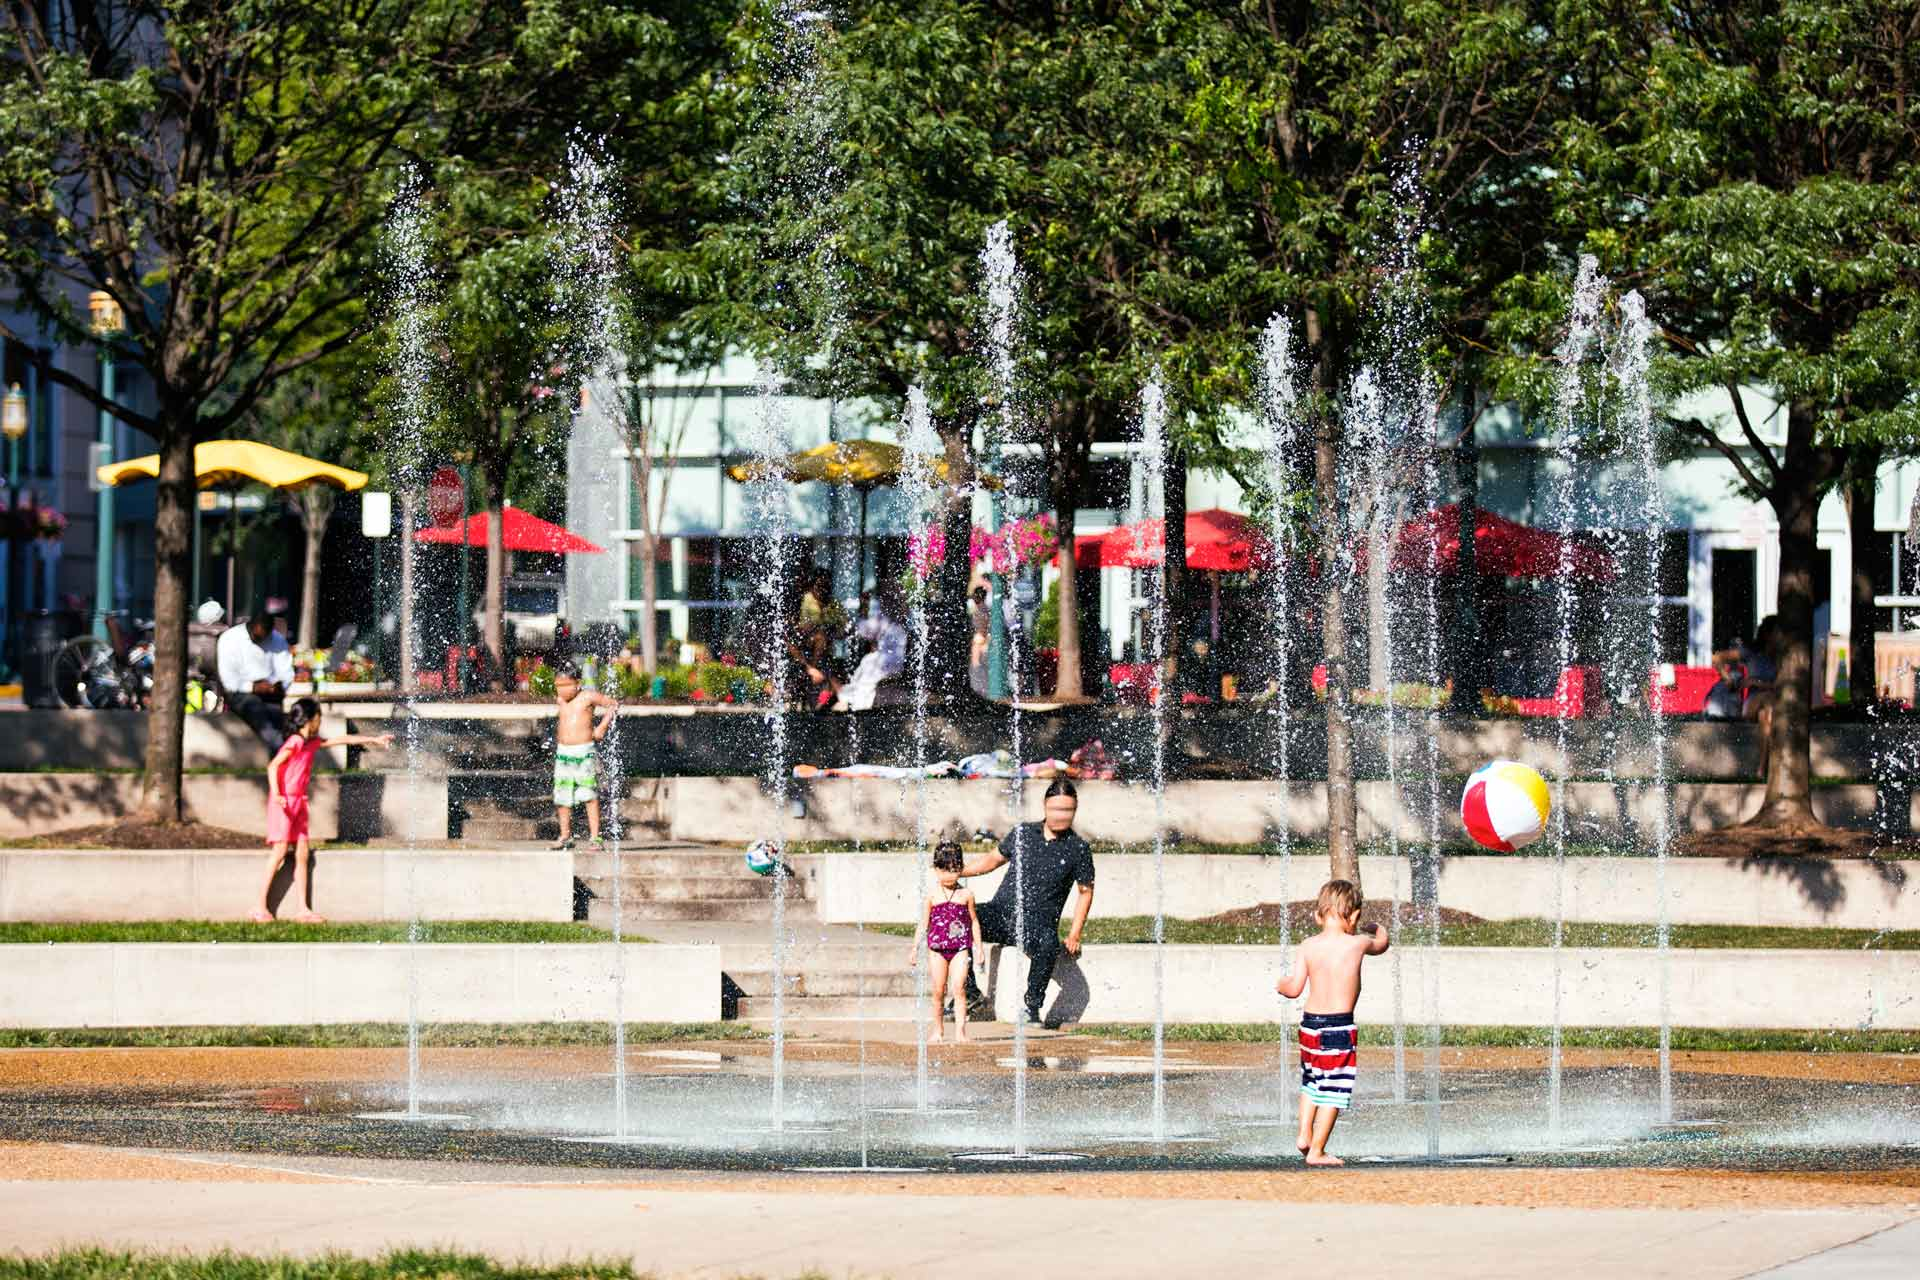 Children playing in the splash fountain on a warm, sunny day